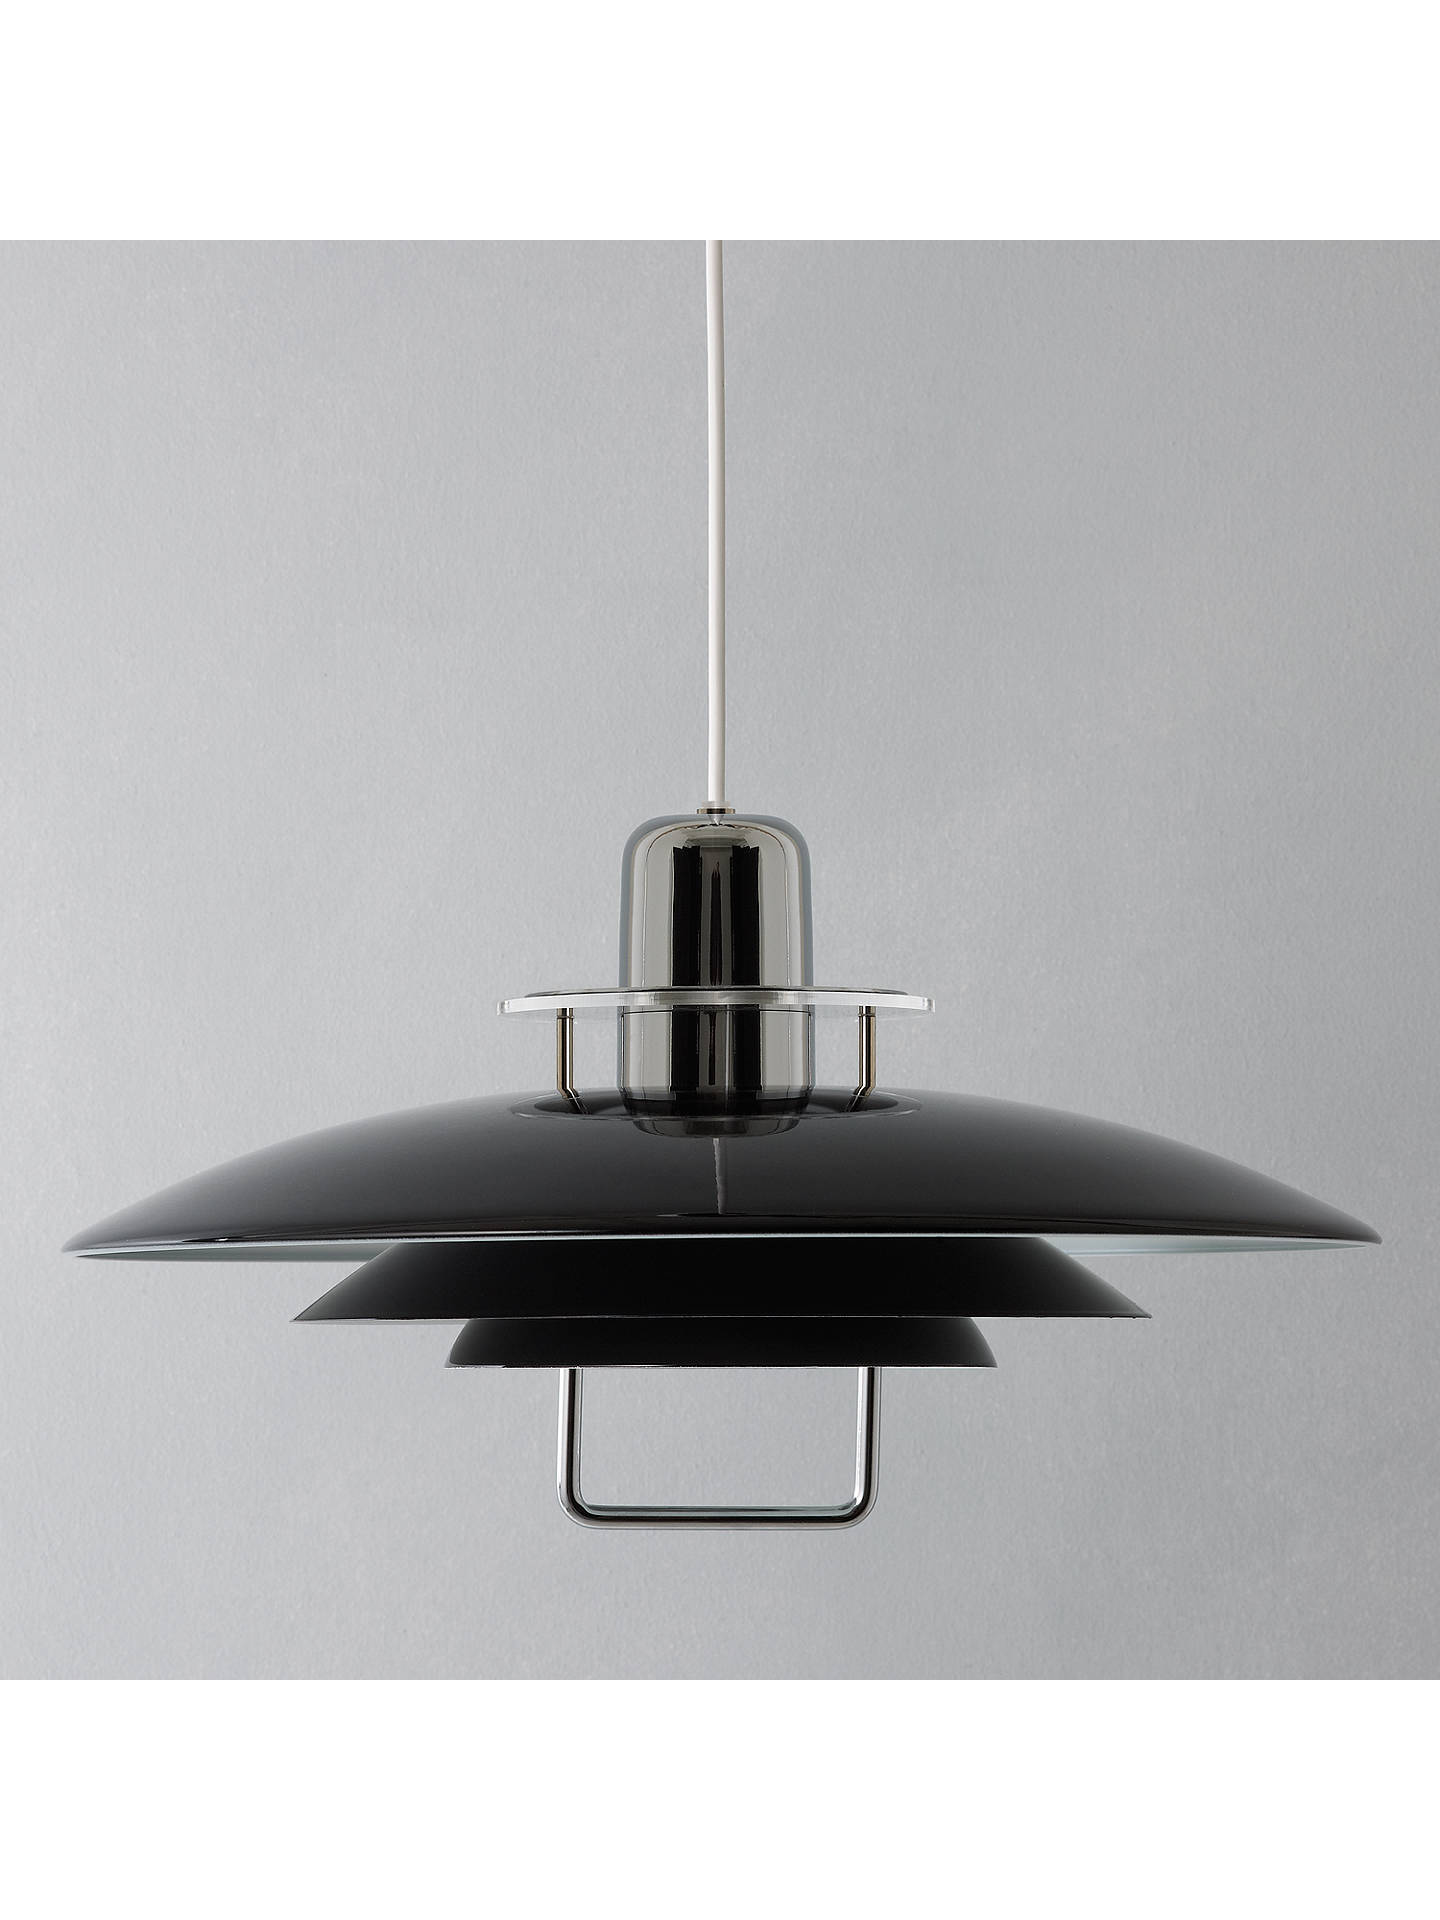 Buybelid felix rise and fall ceiling light online at johnlewis com